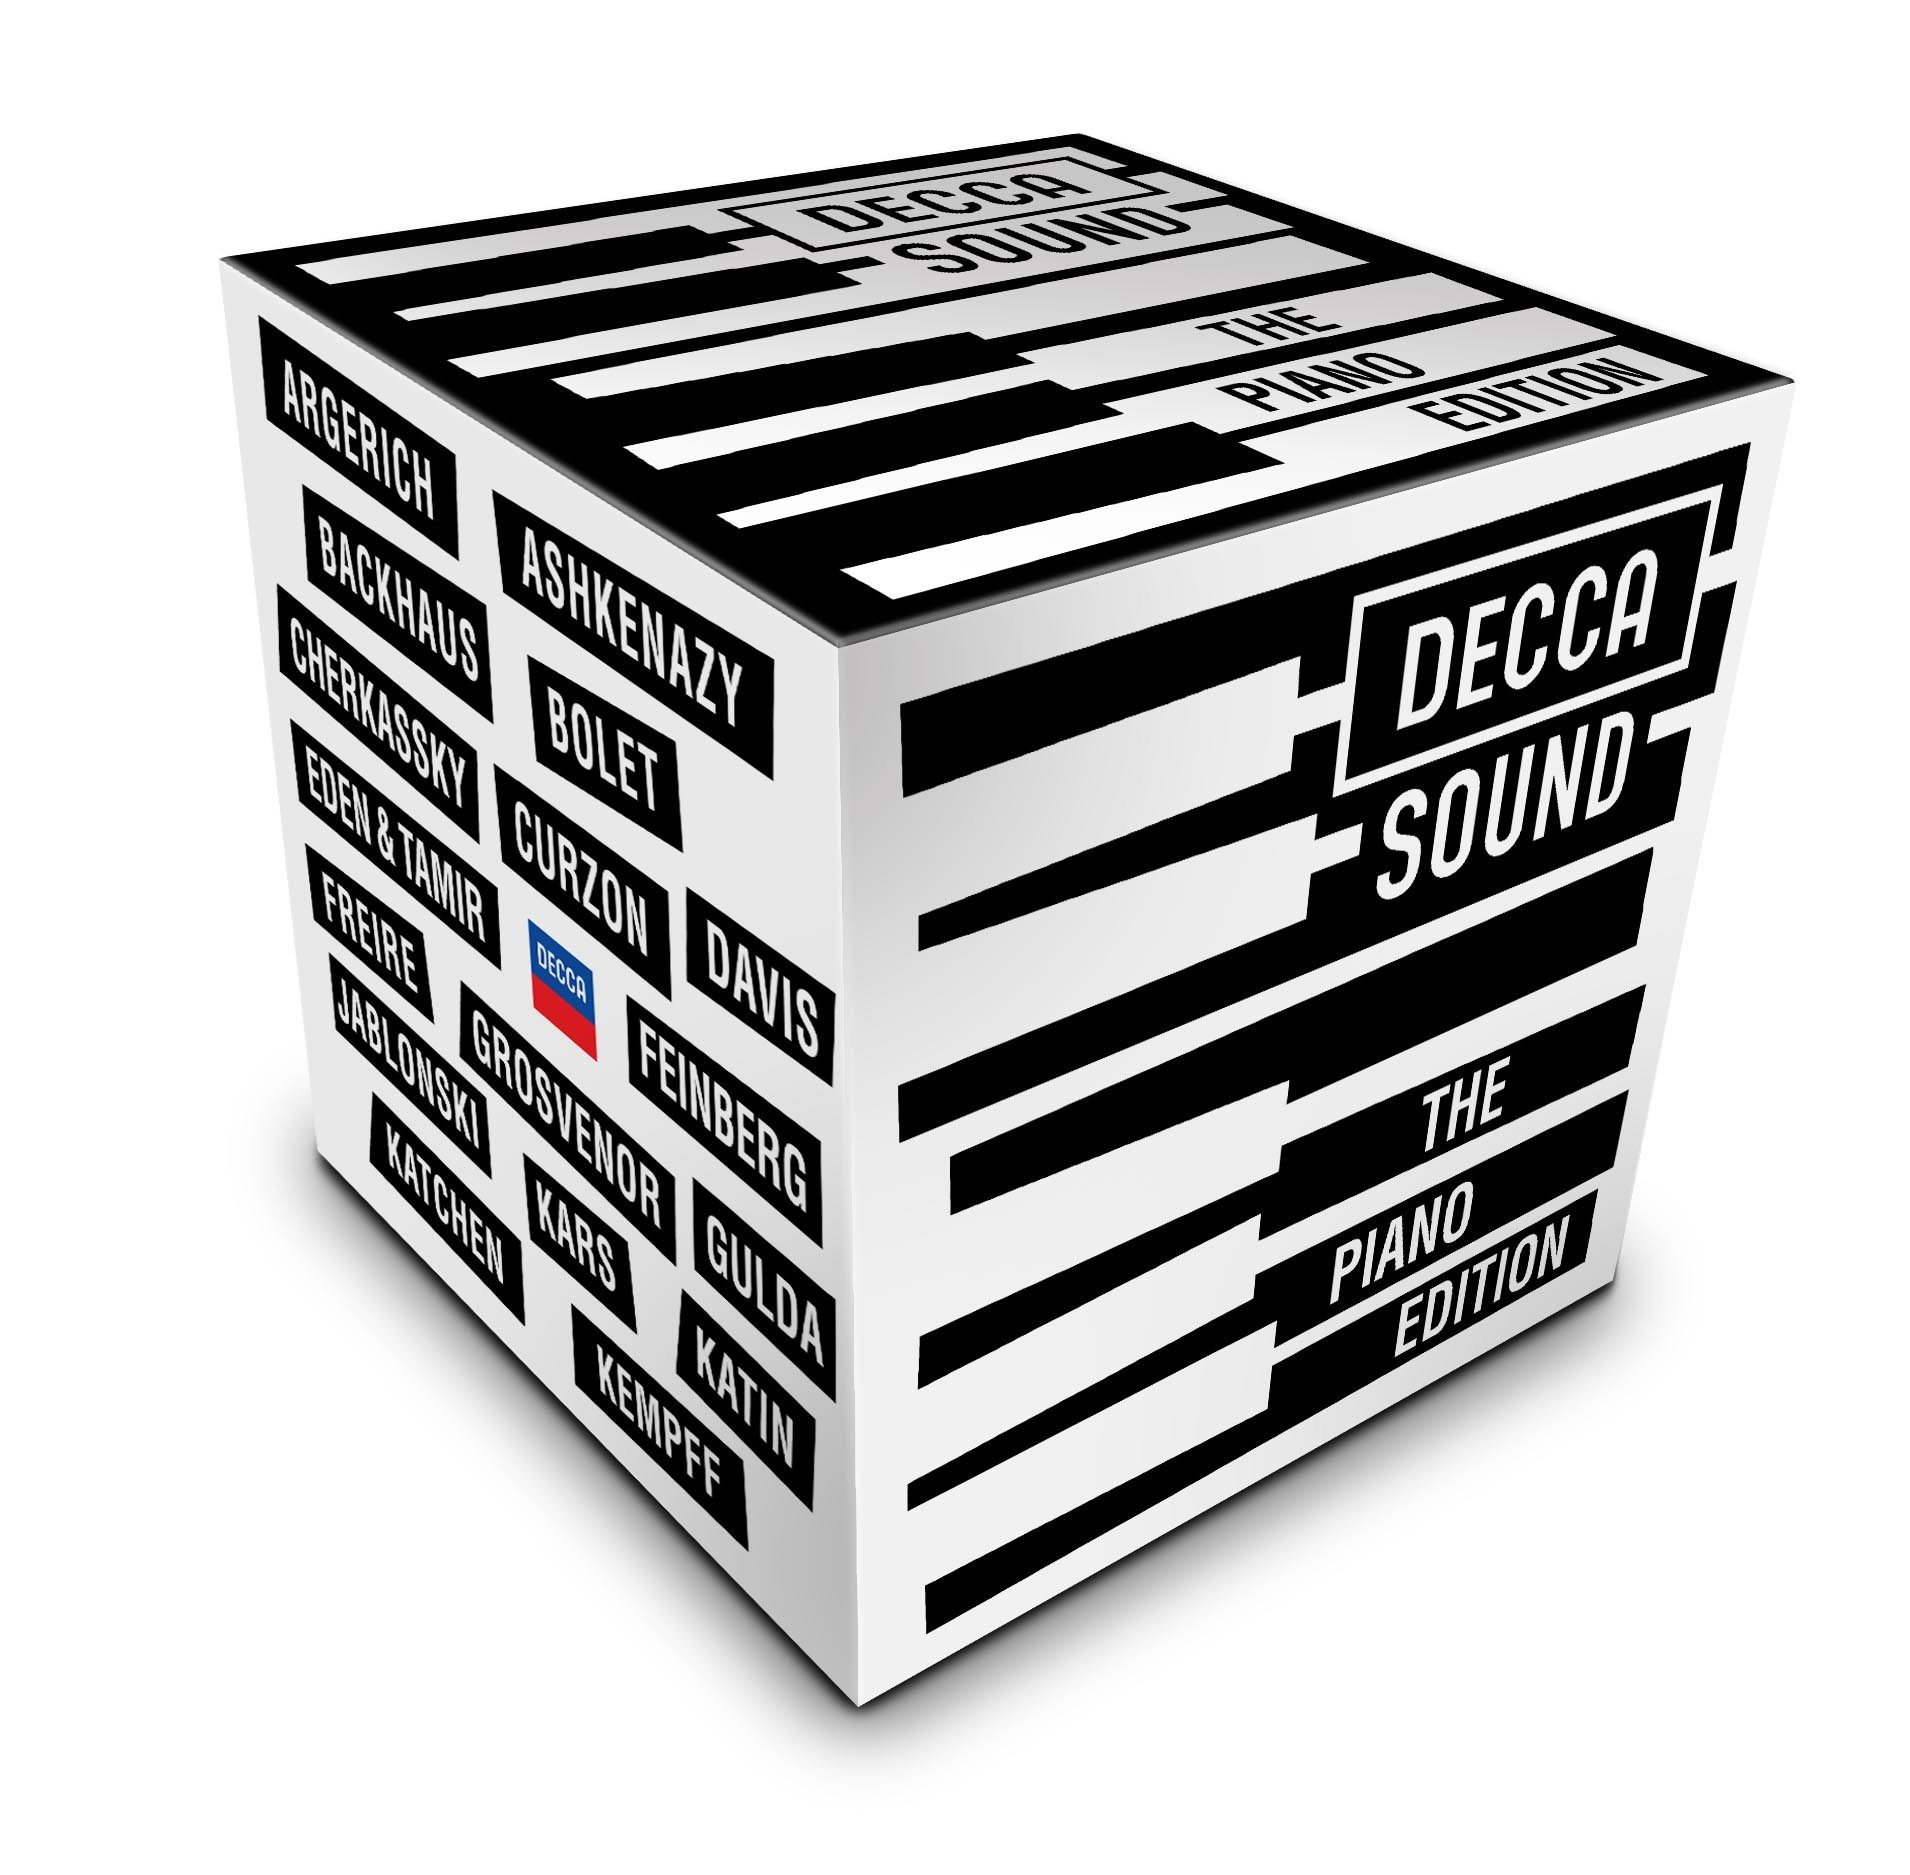 Decca Piano Sound [55 CD Box Set] by Decca